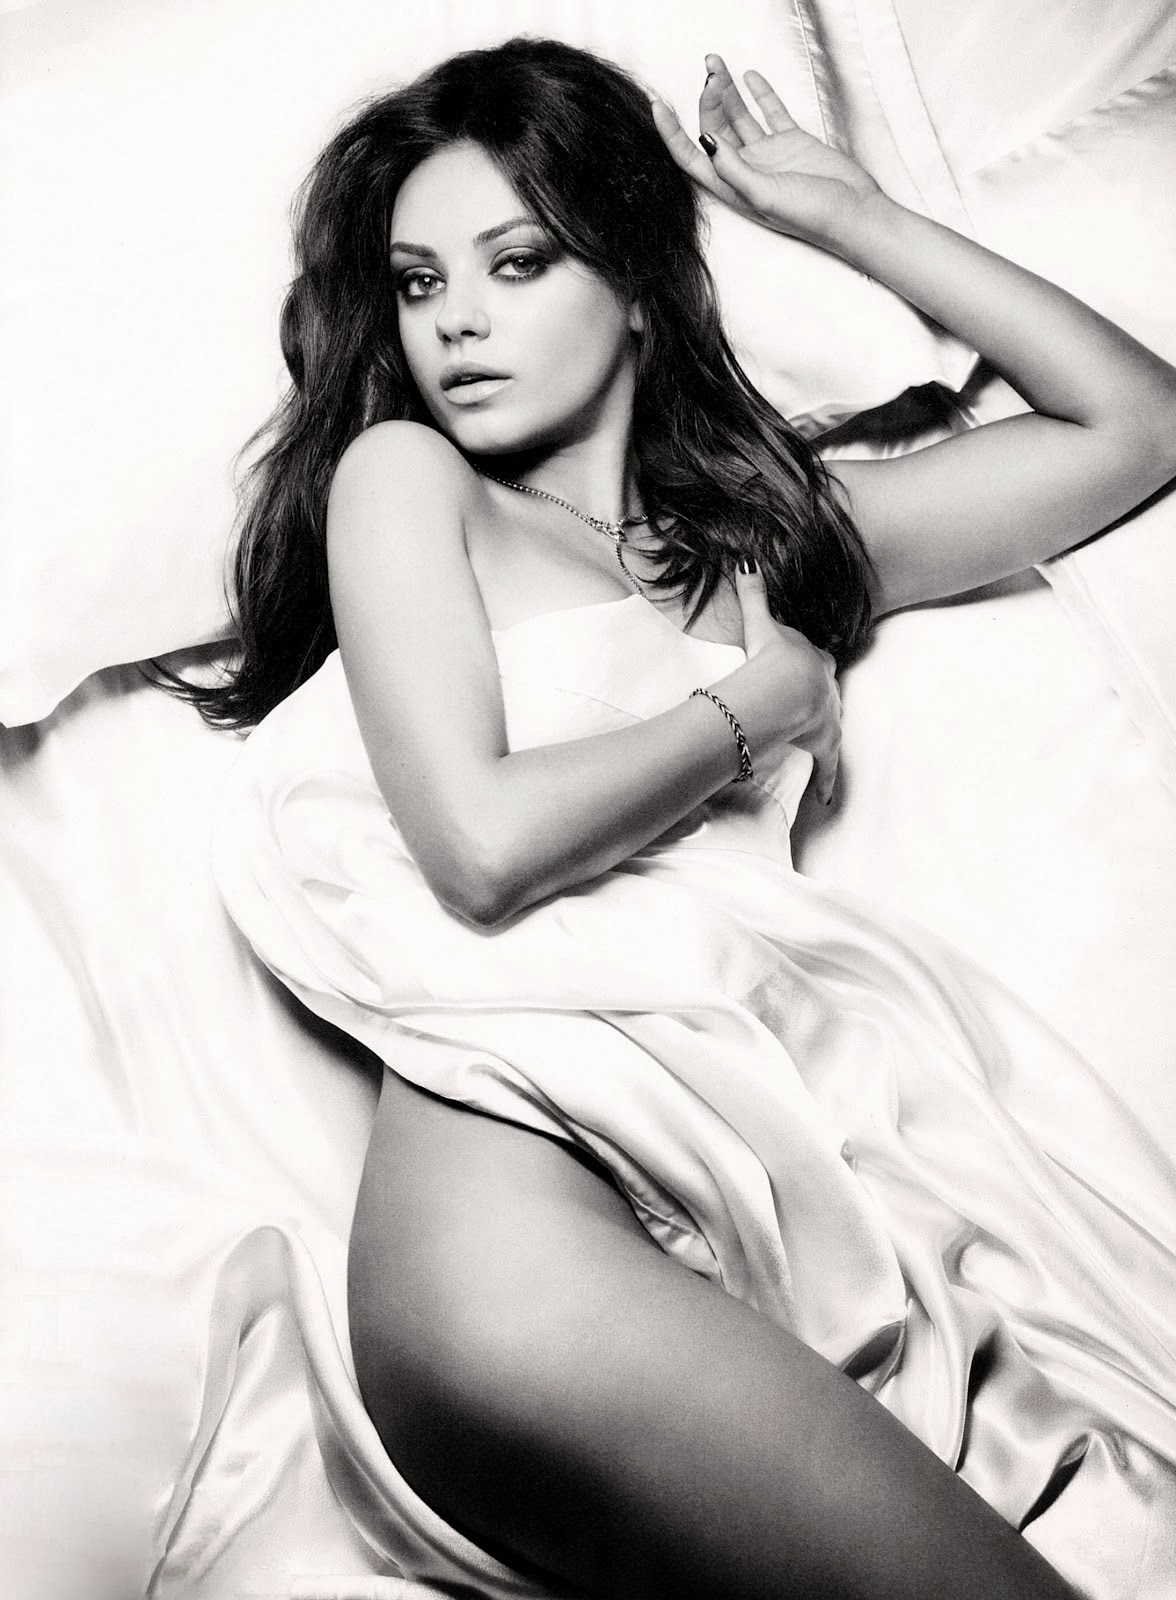 www.CelebTiger.com Mila Kunis posing in Esquire Magazine Photoshoot 2012 4 of 5 Mila Kunis Topless Photoshoot For Esquire Magazine HQ Photos